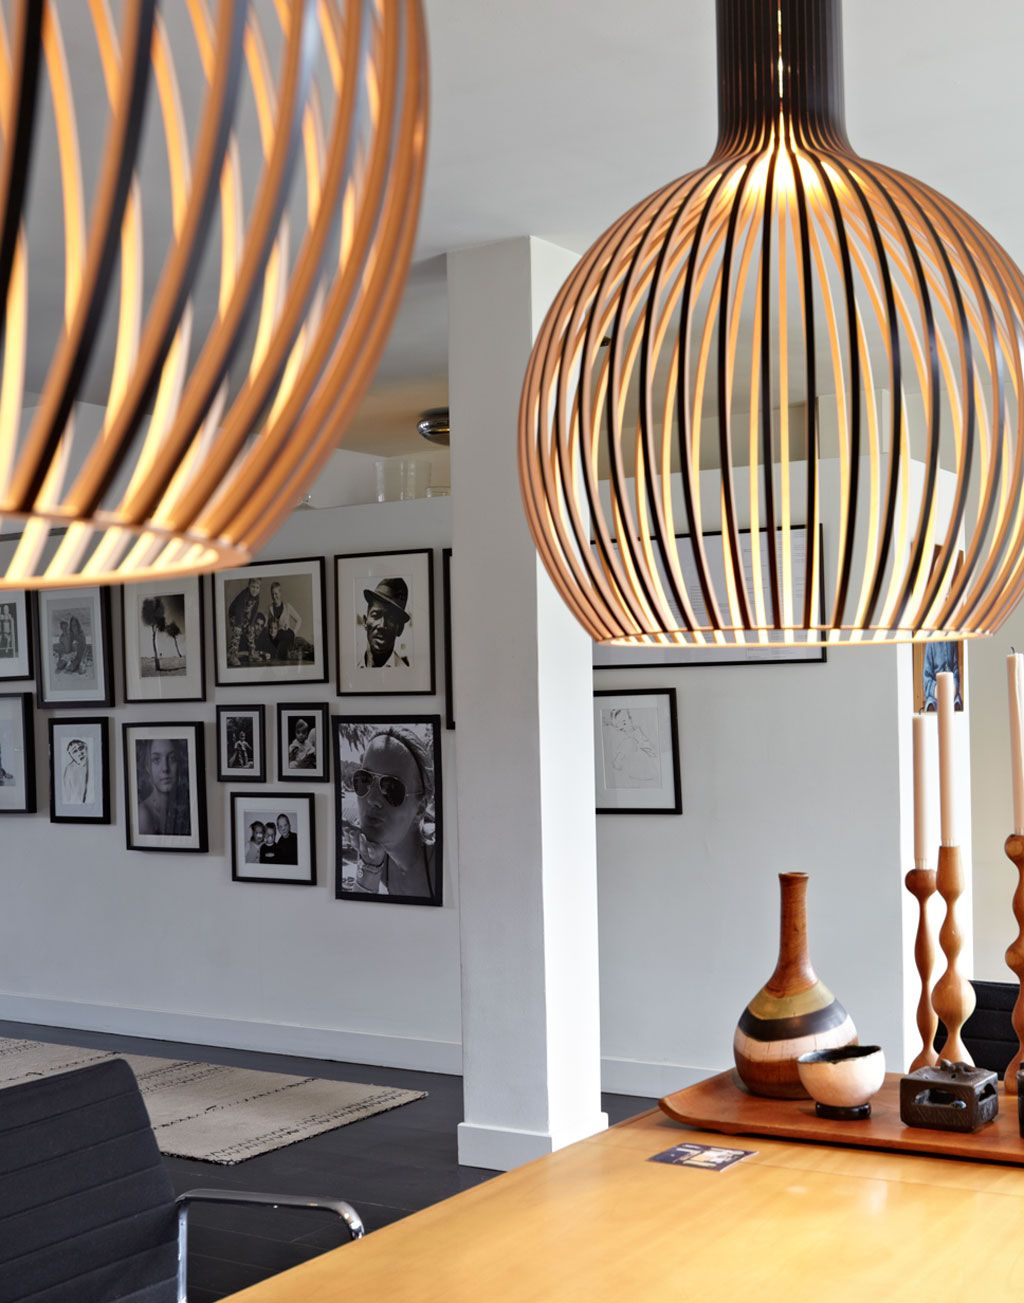 Lamp Frantzen Verlichting The Octo Lamp Designed By Seppo Koho For Secto Design Has A